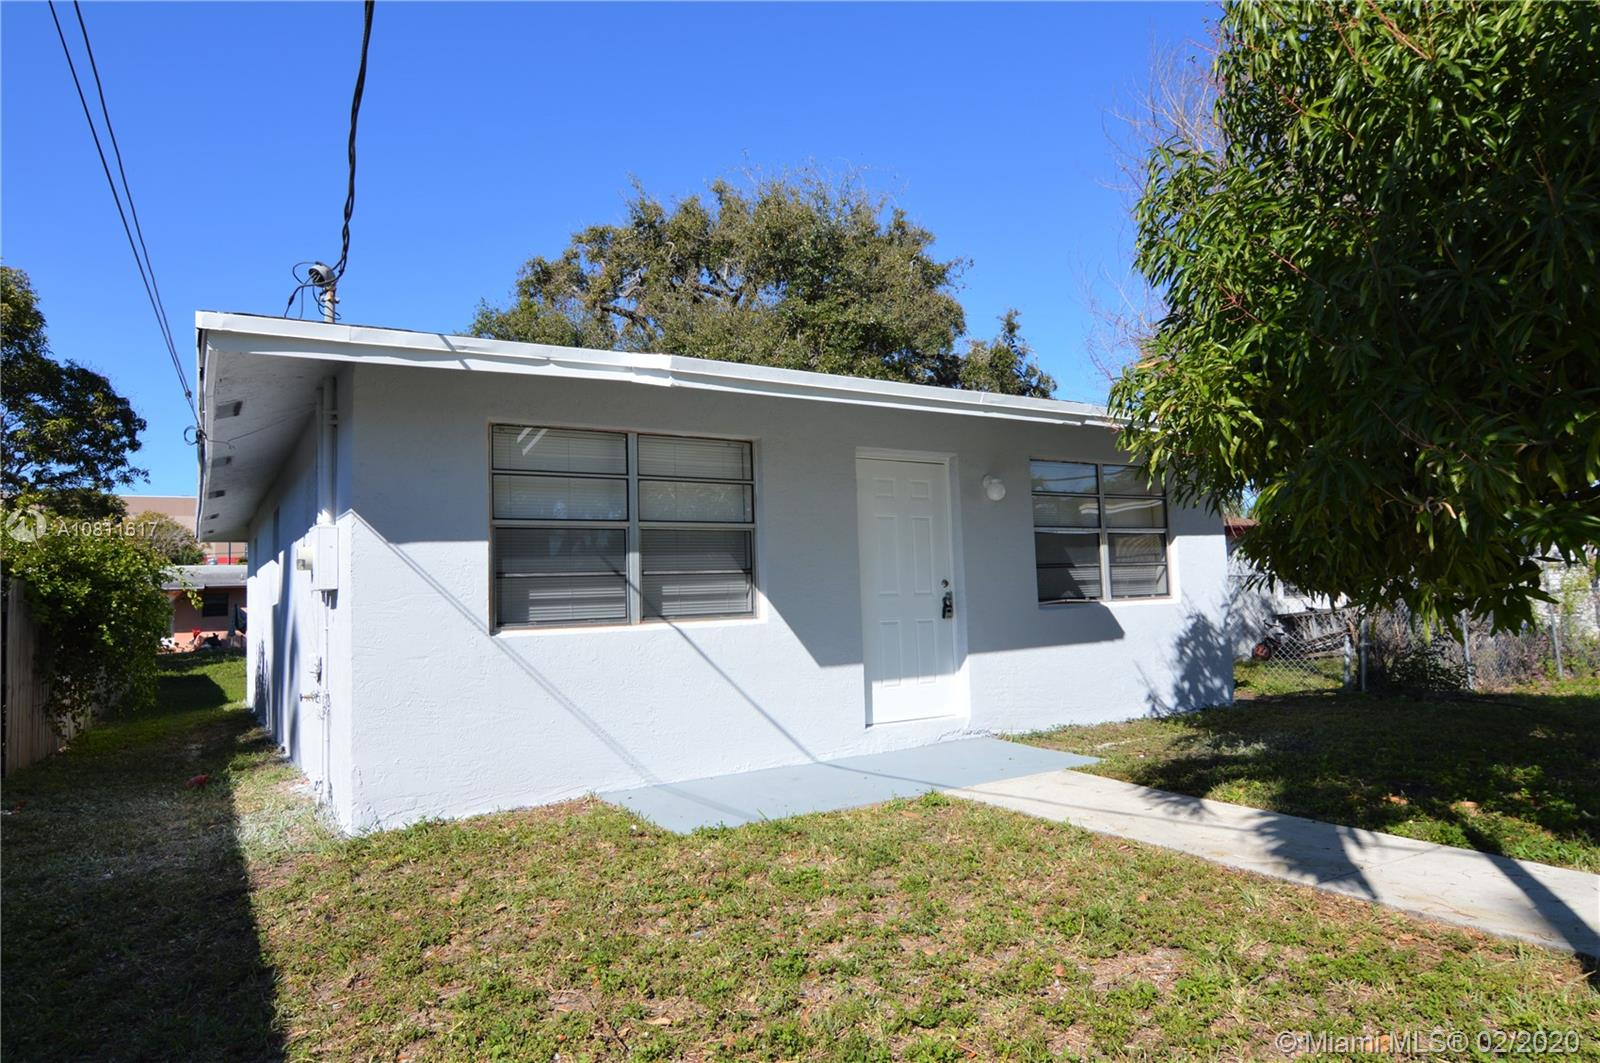 Beautiful renovated house in a great location. 3 Bed/1Bath, New central AC, New Appliances, New Water Heater, New renovated bathroom, New Lighting, New Kitchen Countertop. Must See Won't Last